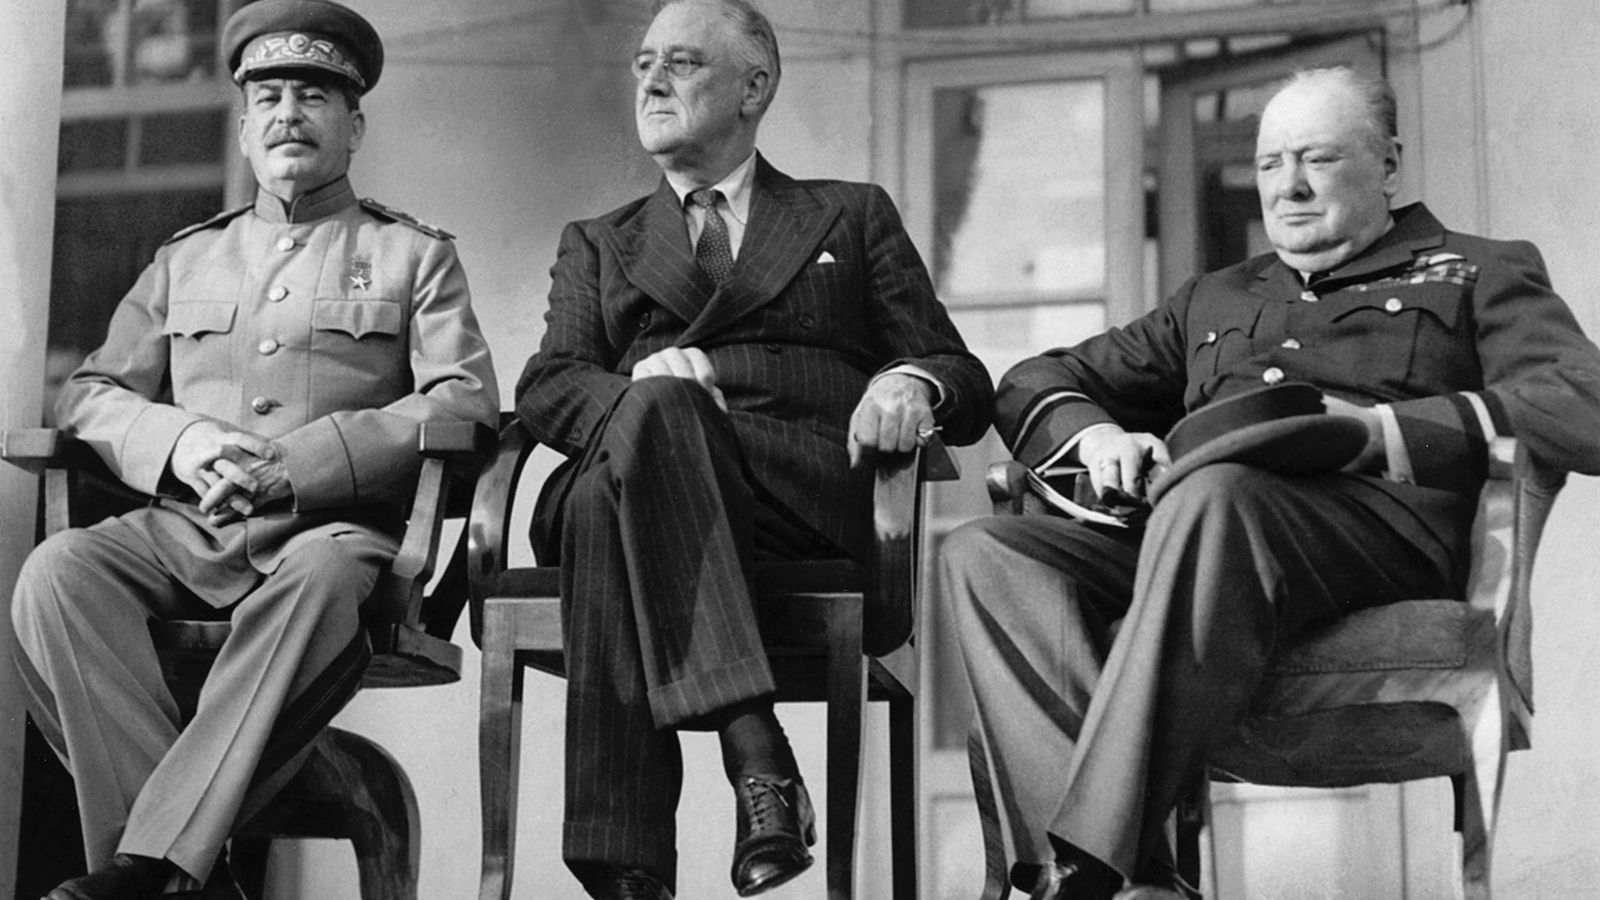 Joseph Stalin, Franklin Roosevelt, and Winston Churchill gathered in Tehran in 1943 to plan their strategy ...